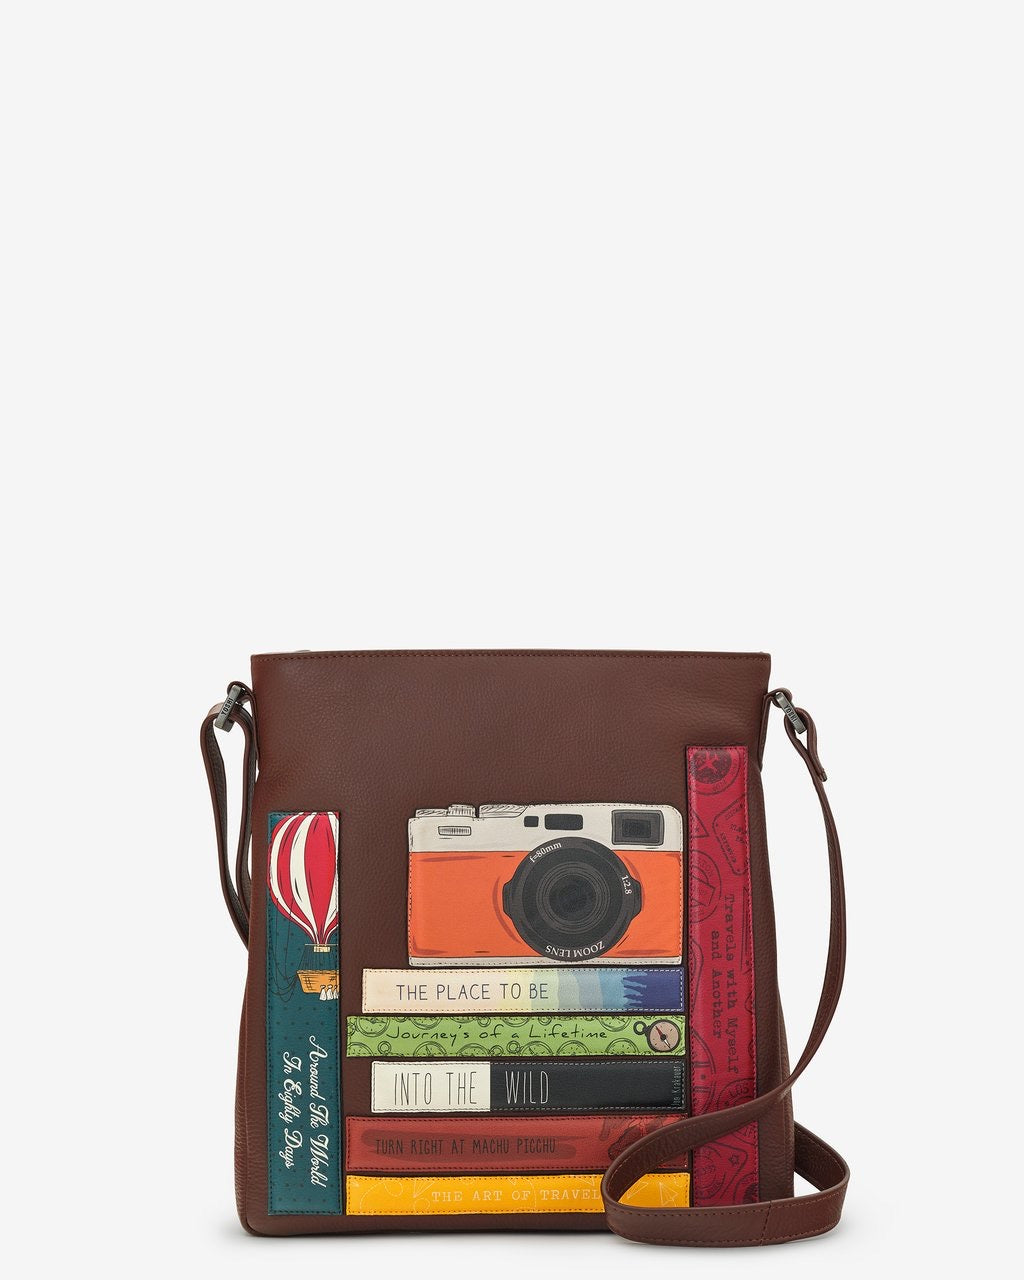 Yoshi Travel Bookworm Library Bryant Leather Cross Body Bag